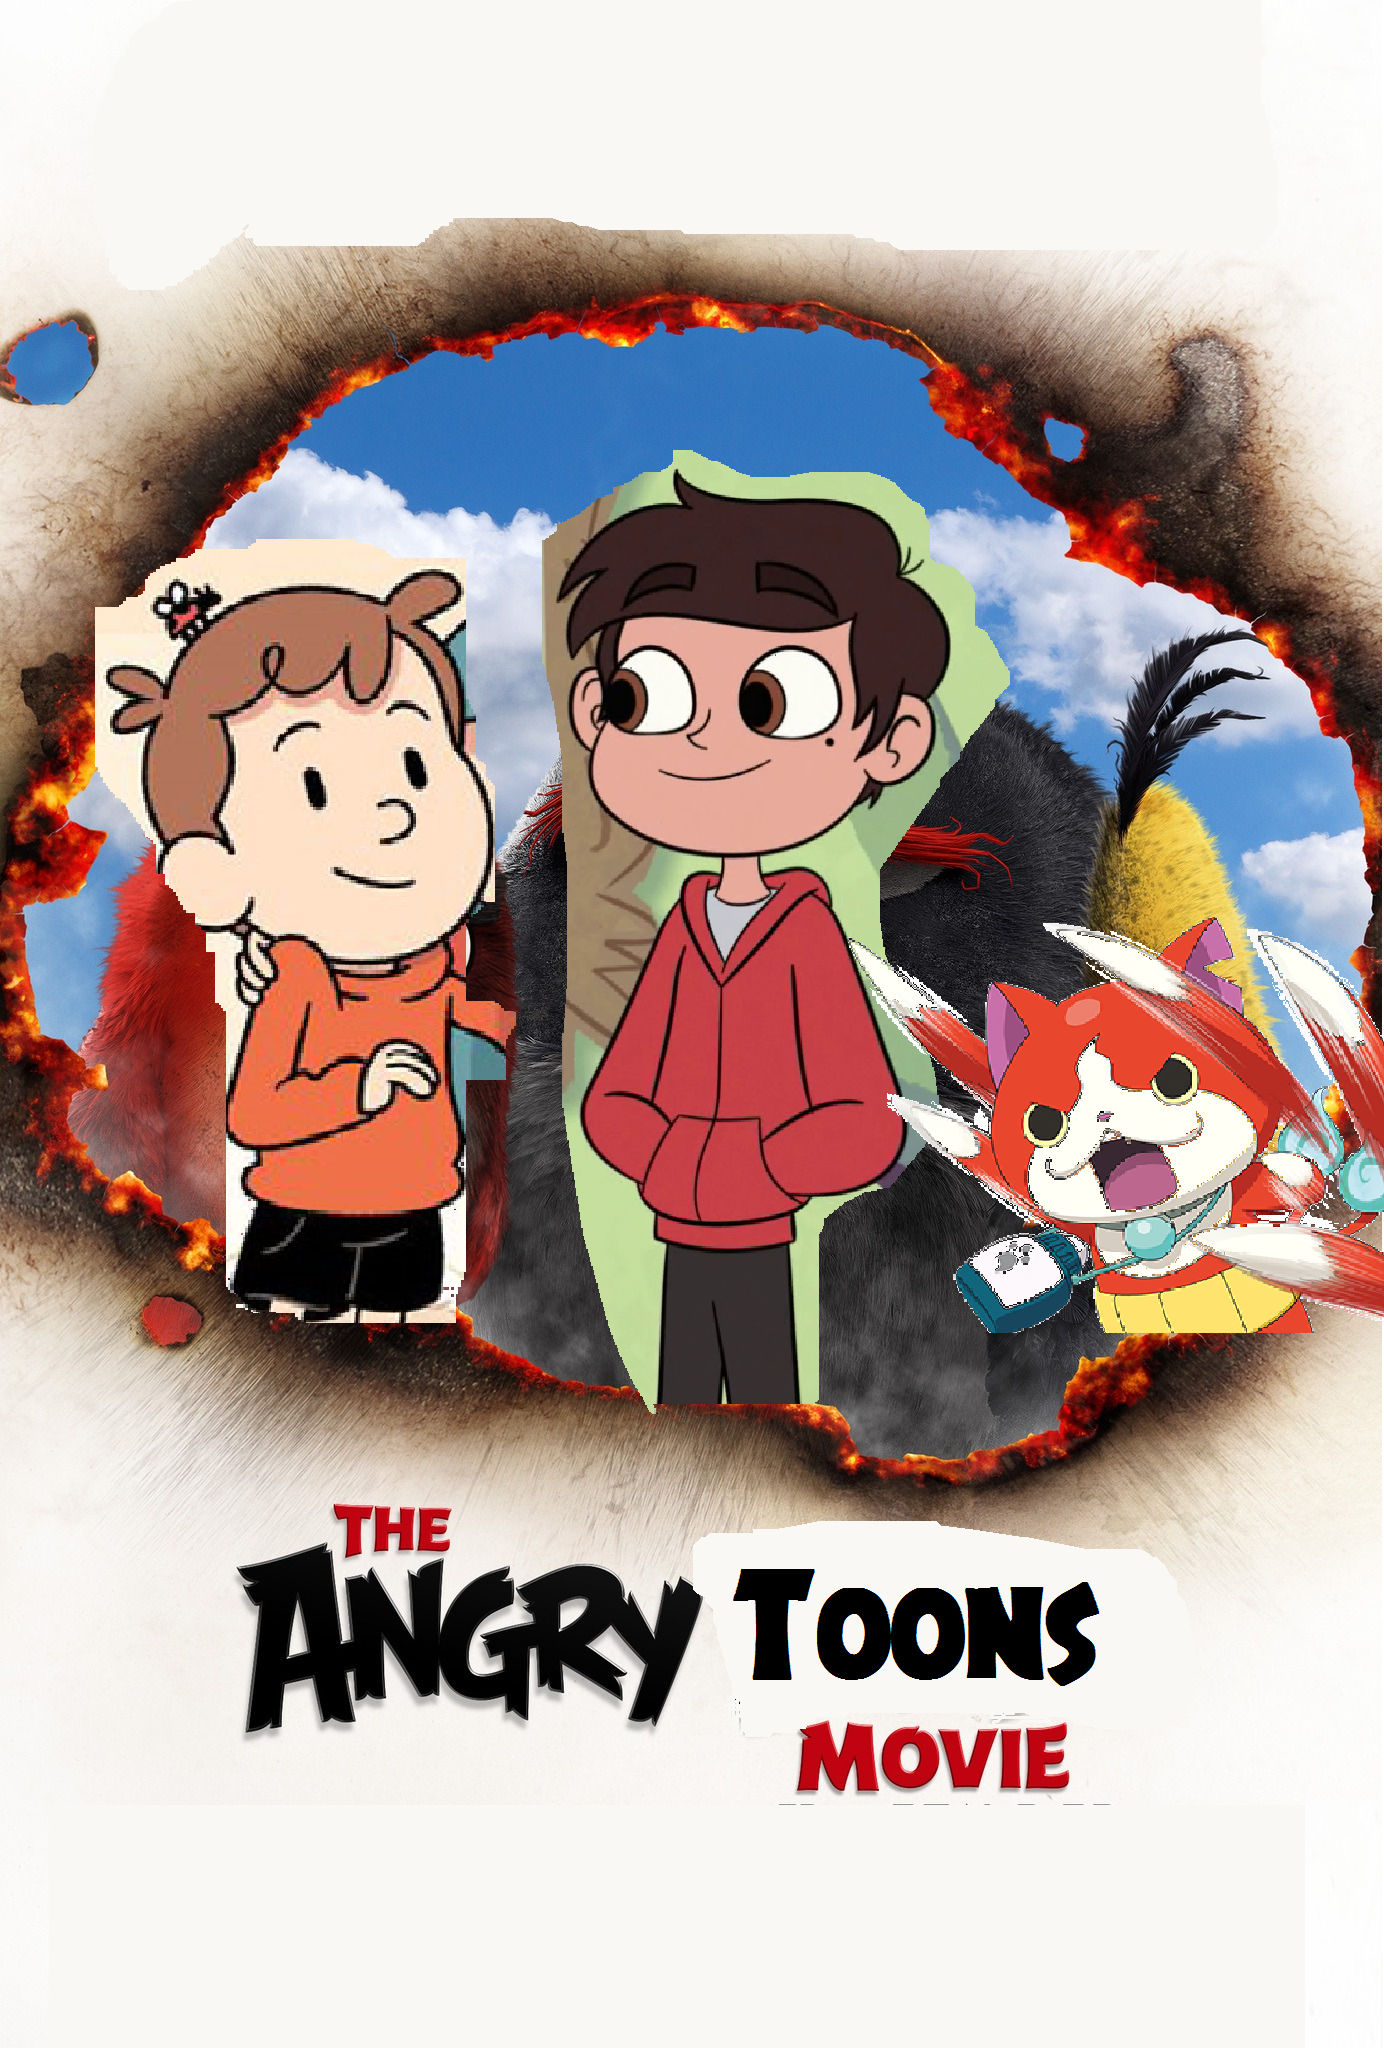 The Angry Toons Movie (Zack Isaac Sanchez Style)